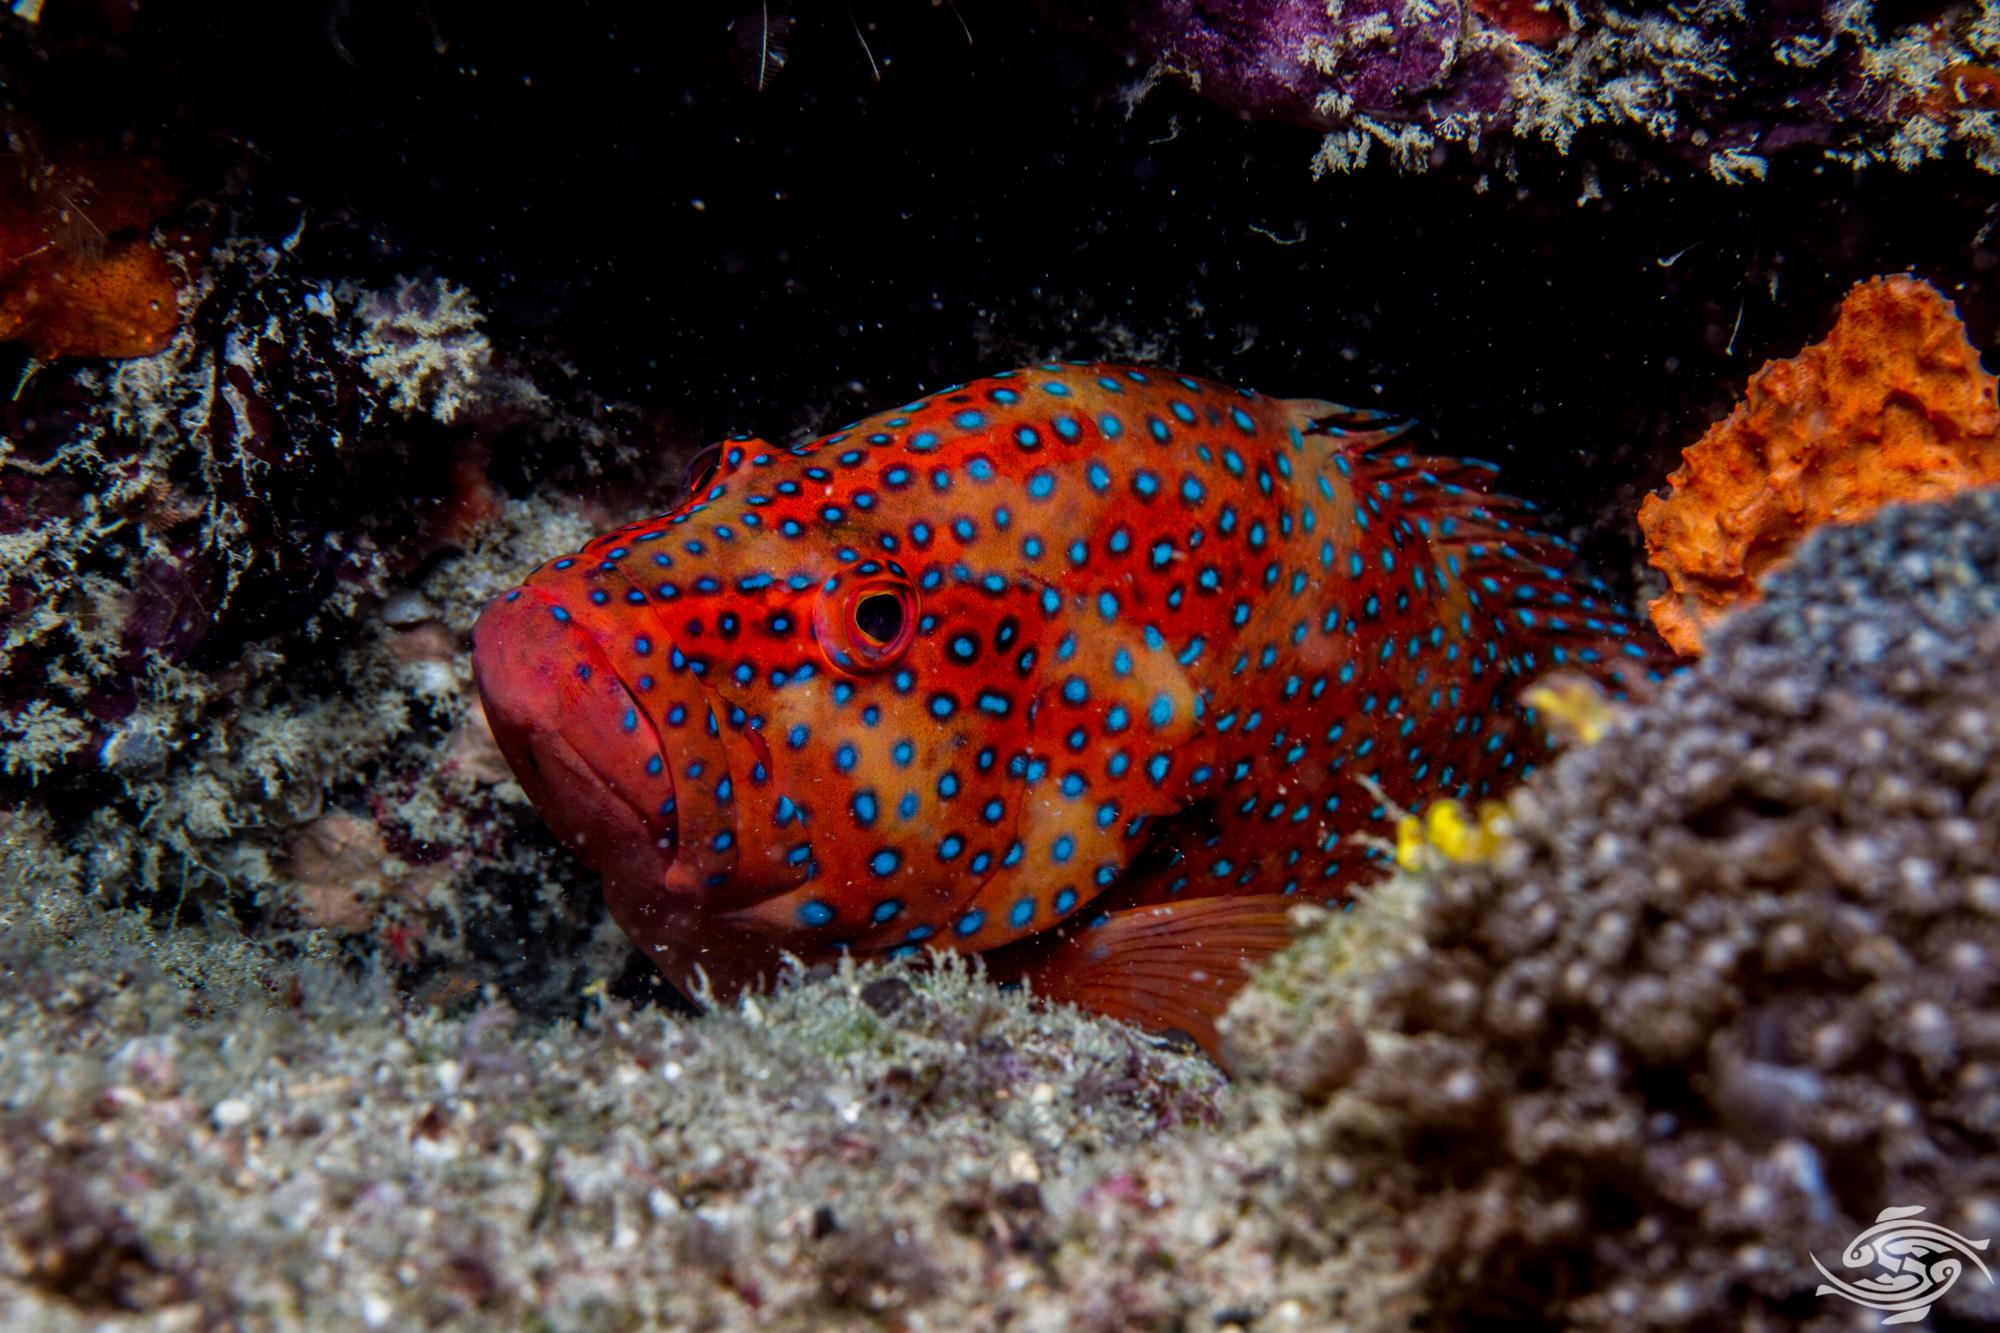 Coral Rock Cod - Facts and Photographs - Seaunseen